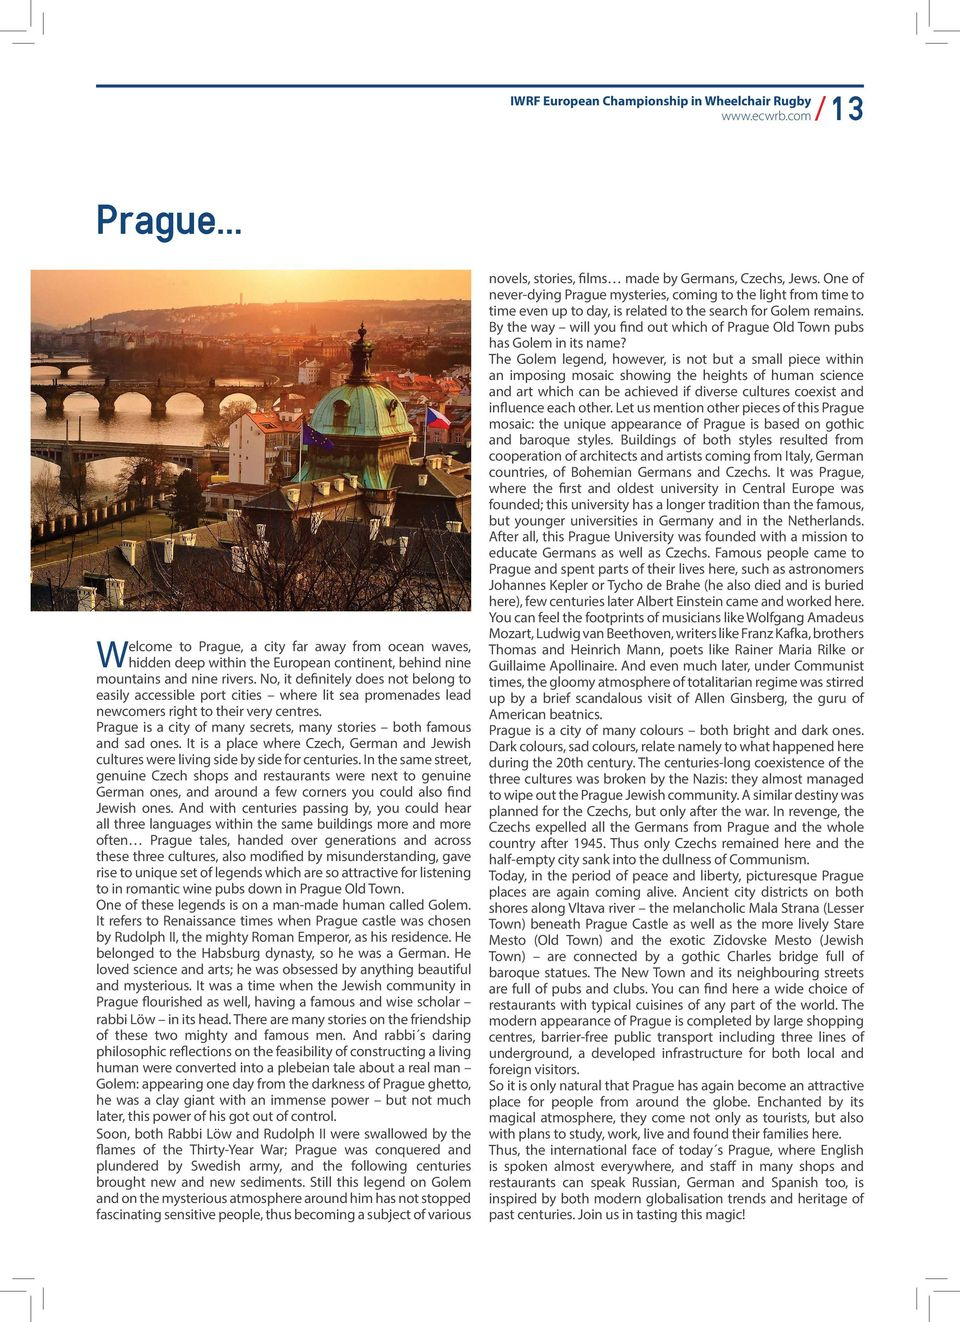 Prague is a city of many secrets, many stories both famous and sad ones. It is a place where Czech, German and Jewish cultures were living side by side for centuries.